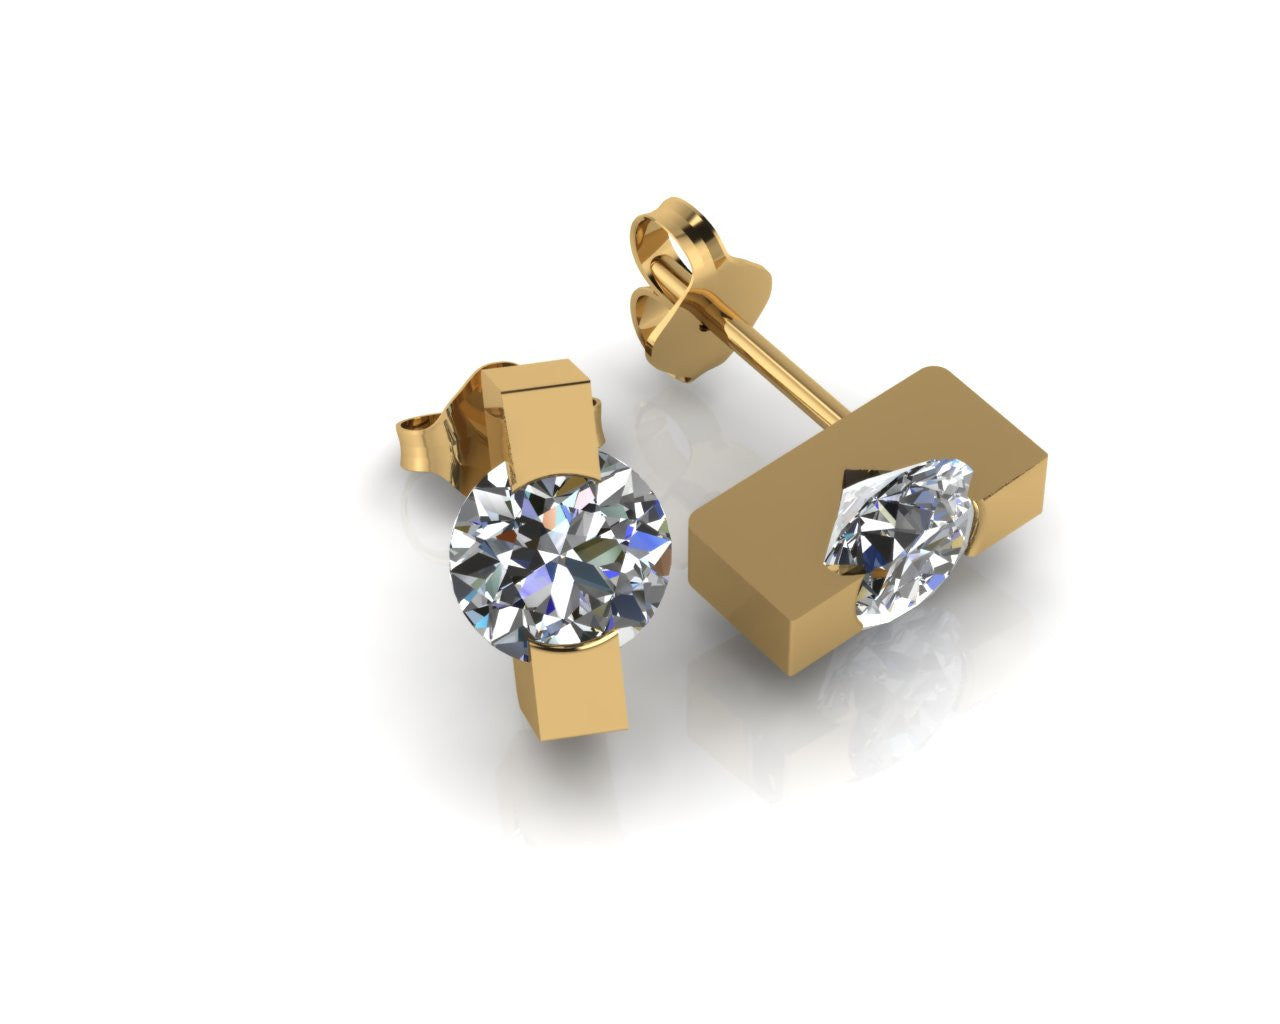 18ct Yellow Gold Trapeze Brilliant-cut Diamond Stud Earrings - Andrew Scott